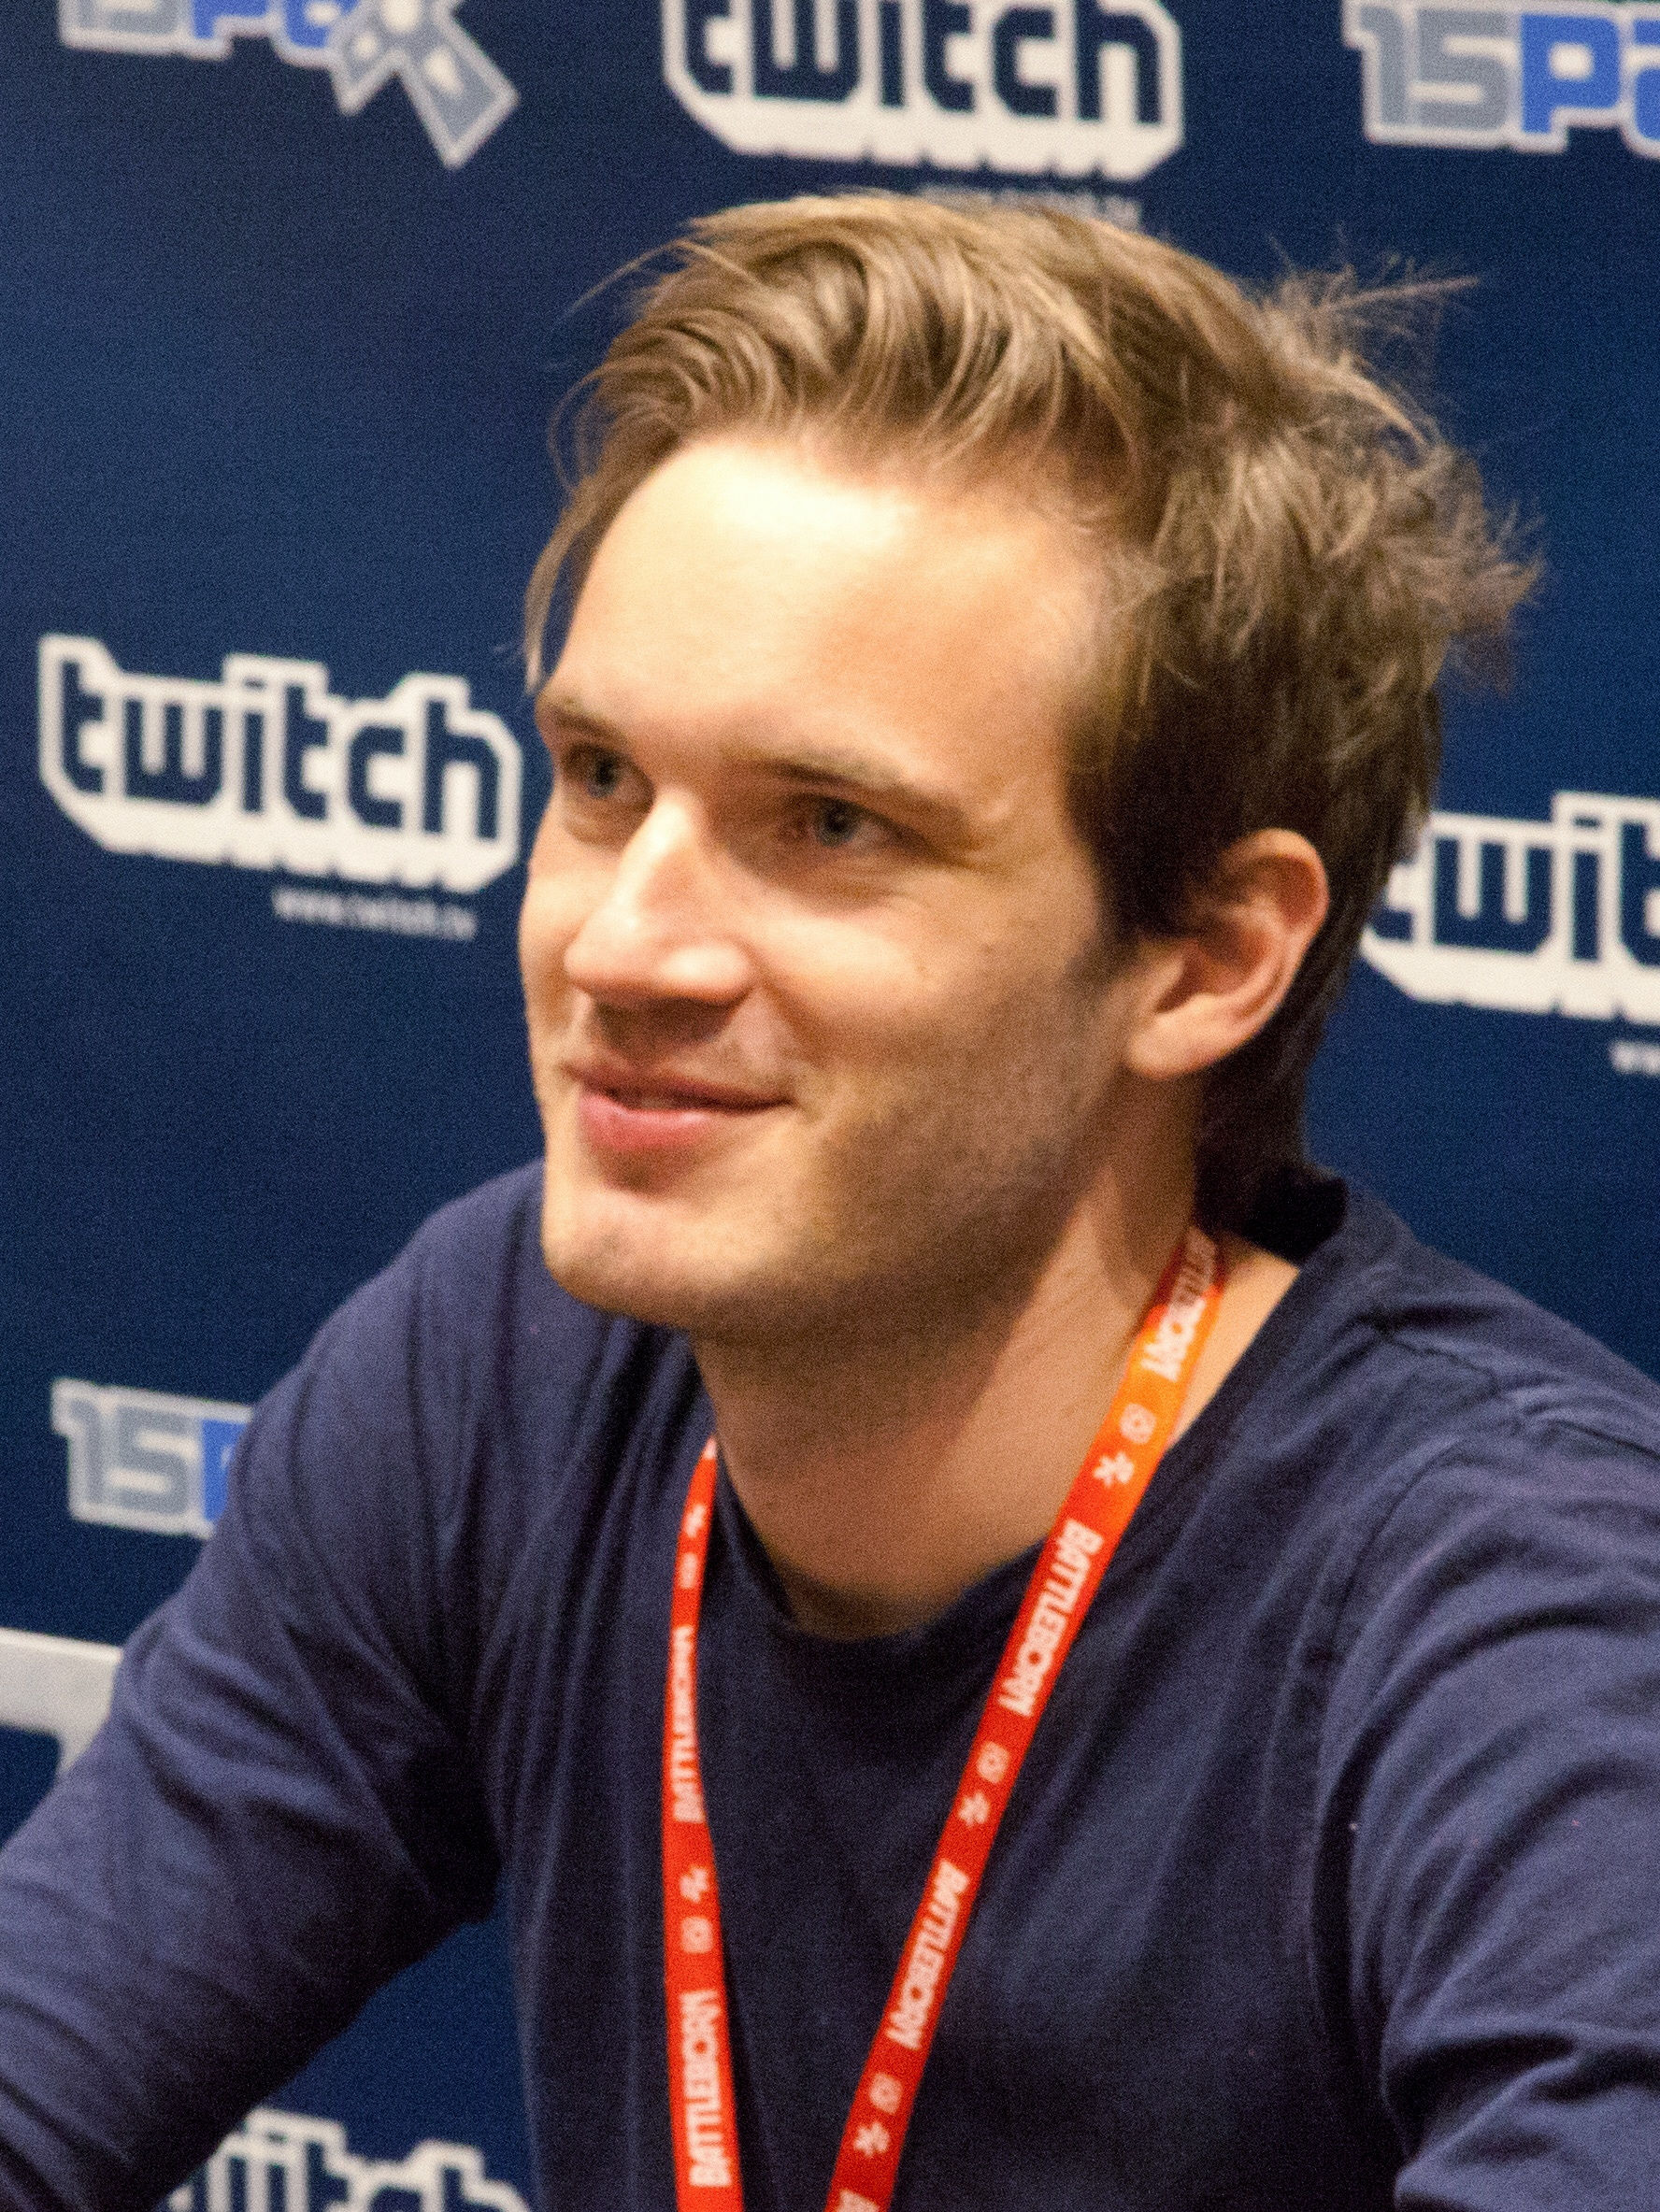 Photo of PewDiePie: Swedish YouTuber and video game commentator